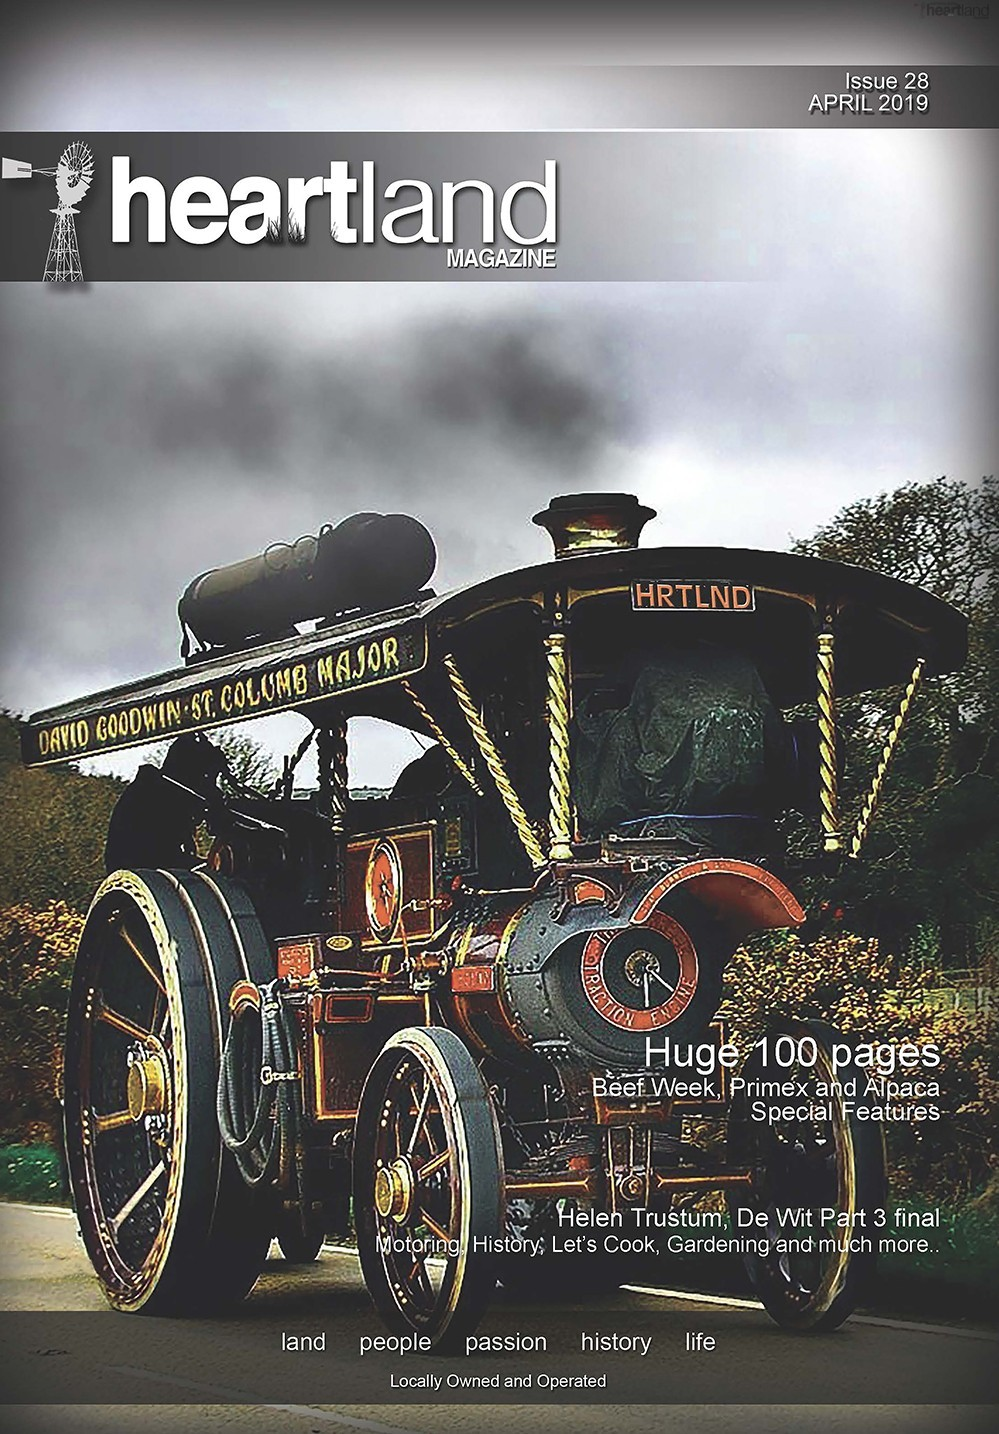 Heartland eMagazine Issue 27, News, Events & Advertising NSW Northern Rivers, Advertising Lismore, Advertising Byron Bay Lismore Advertising, Ballina Advertising